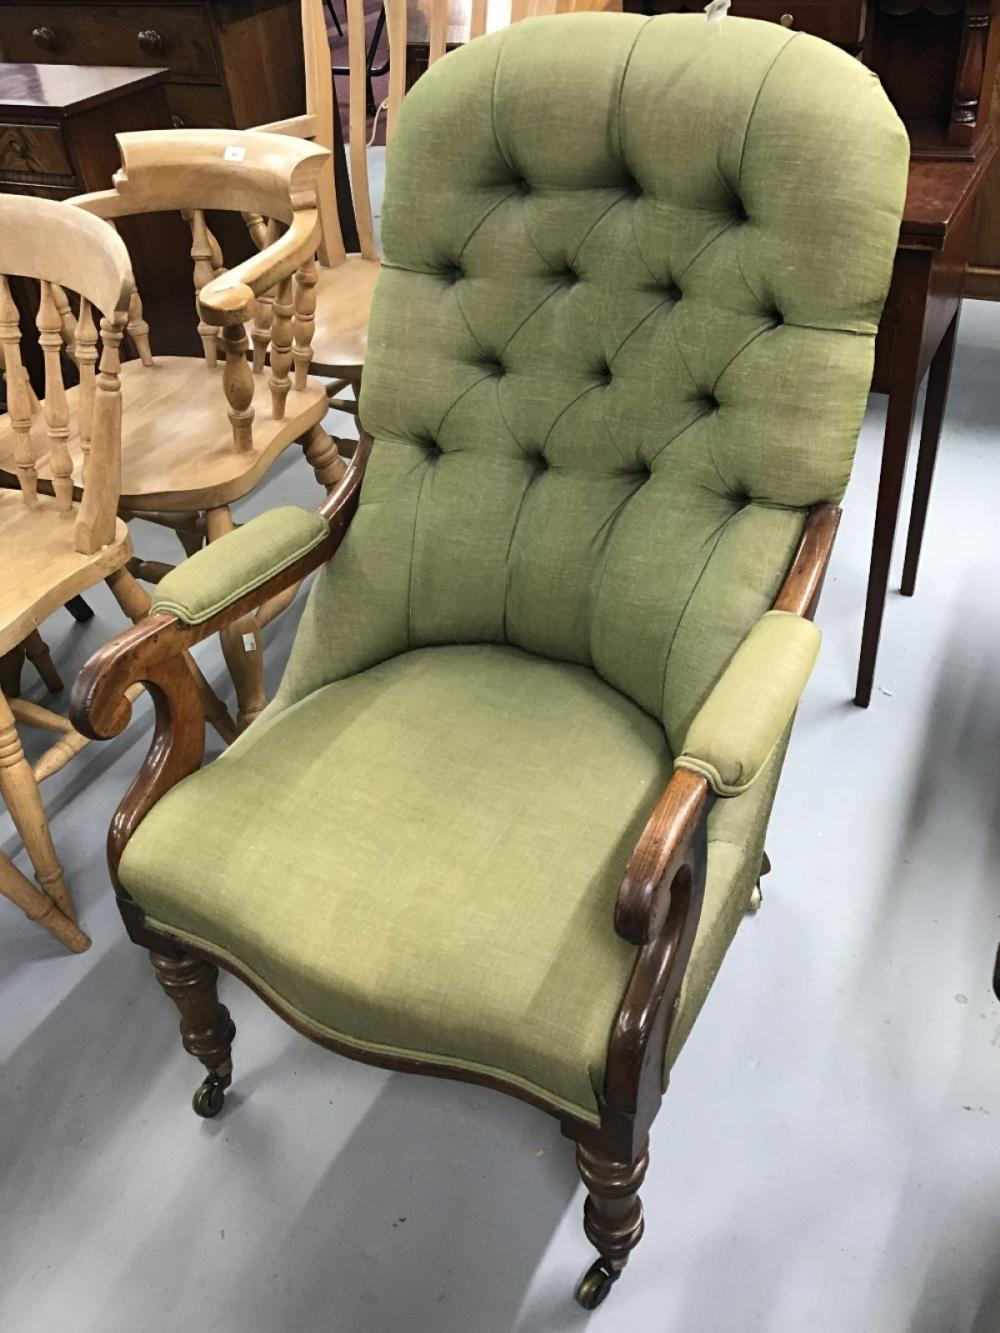 19th cent. Mahogany upholstered library chair with padded elbow rests. (1 arm a/f.)